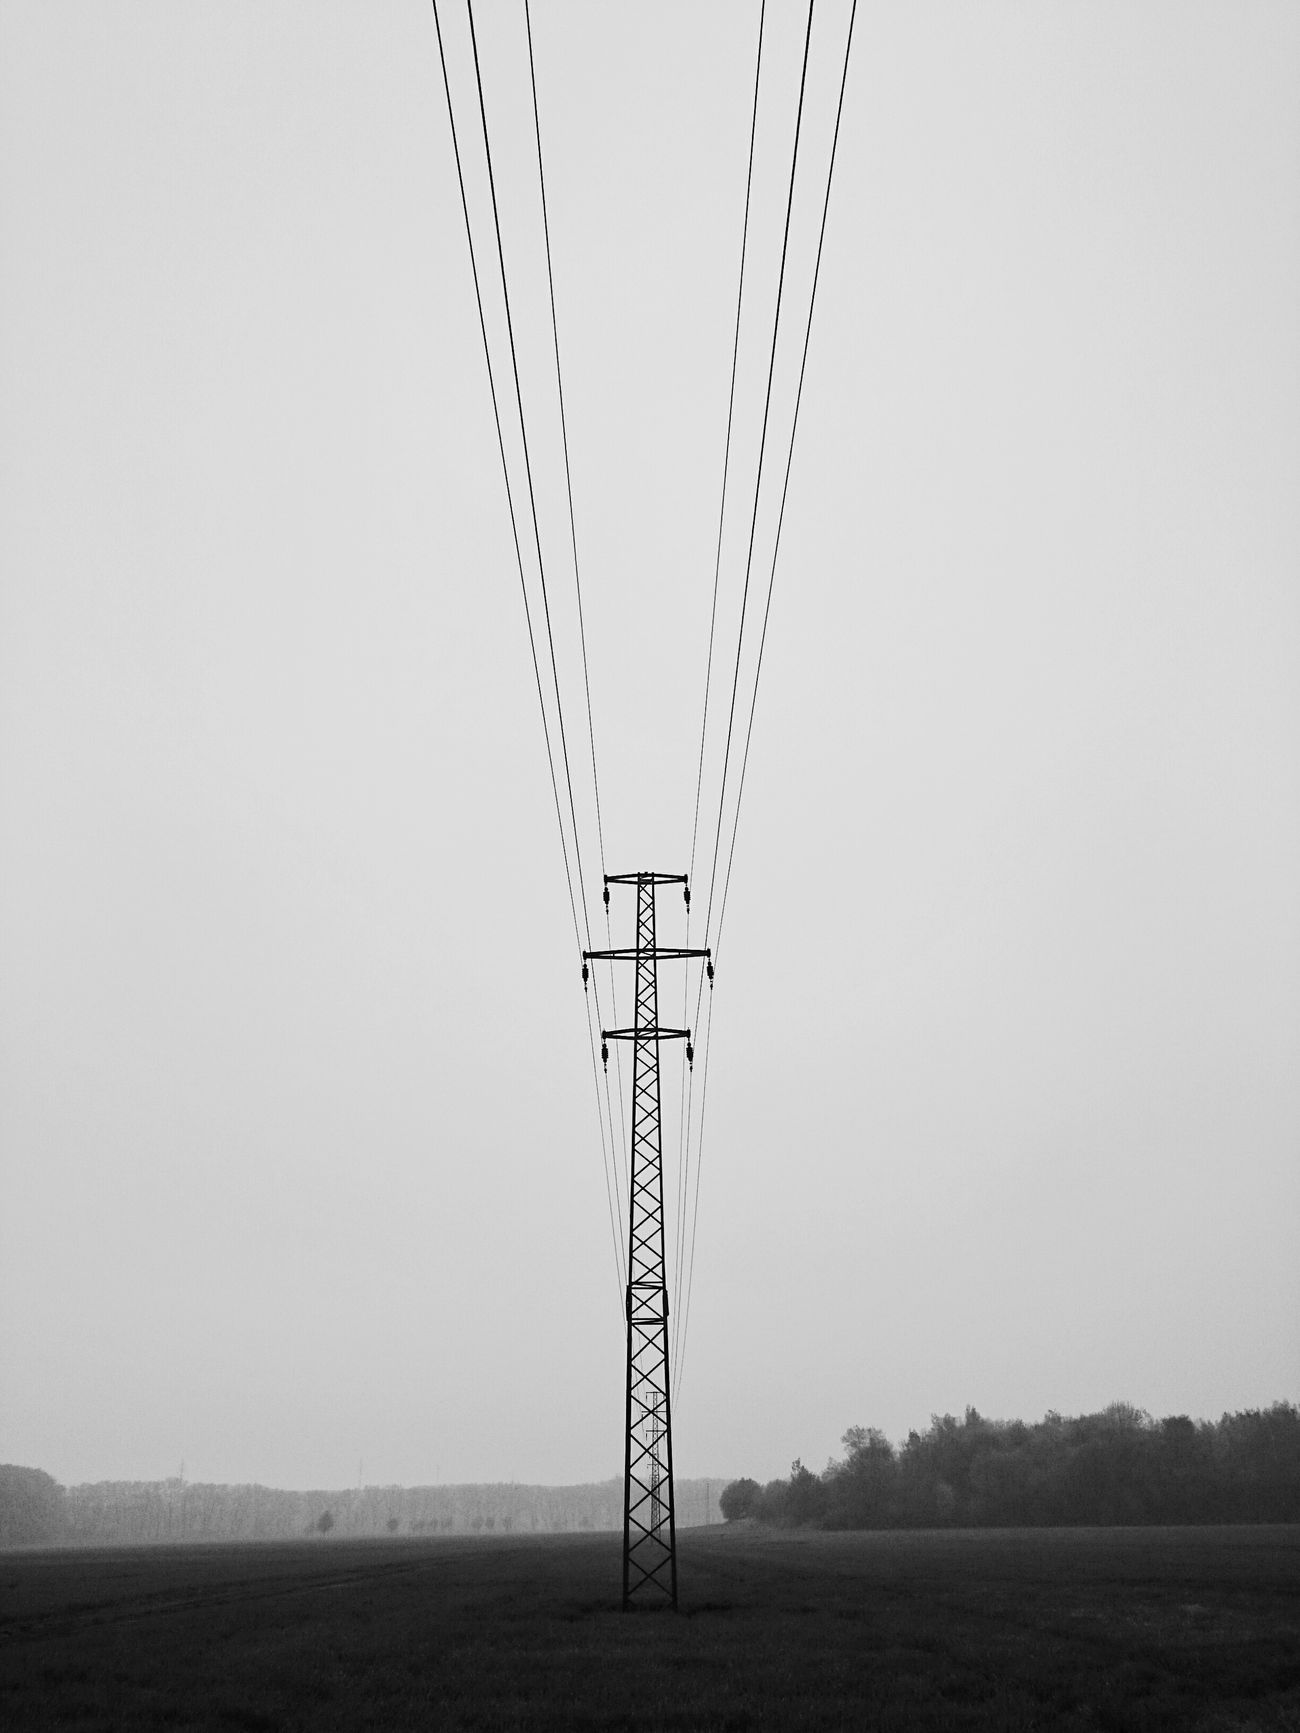 Blackandwhite Photography Bnw_captures Bnw_collection Cable Clear Sky Electricity  Electricity Pylon EyeEm Best Shots EyeEm Best Shots - Black + White EyeEm Black&white! EyeEm Gallery Field Foggy Day Foggy Morning Landscape Lineart Minimalobsession Moody Weather No People Outdoors Symmetry Symmetryporn XPERIA Xperiaphotography